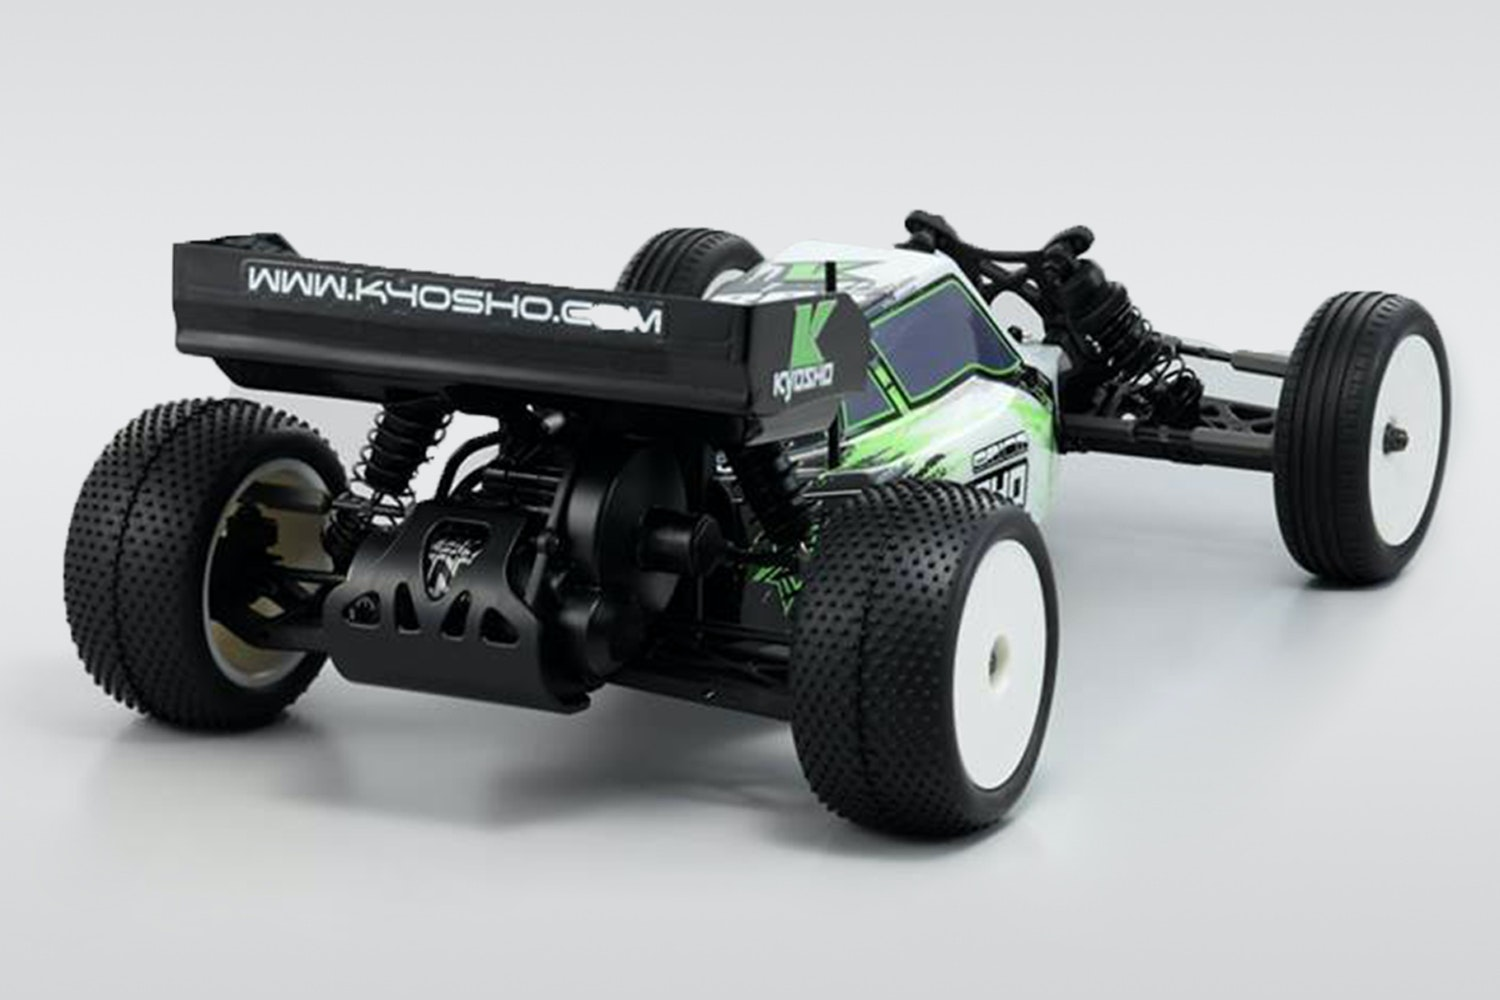 Kyosho 1/10 Ultima RB6 Brushless Buggy RTR